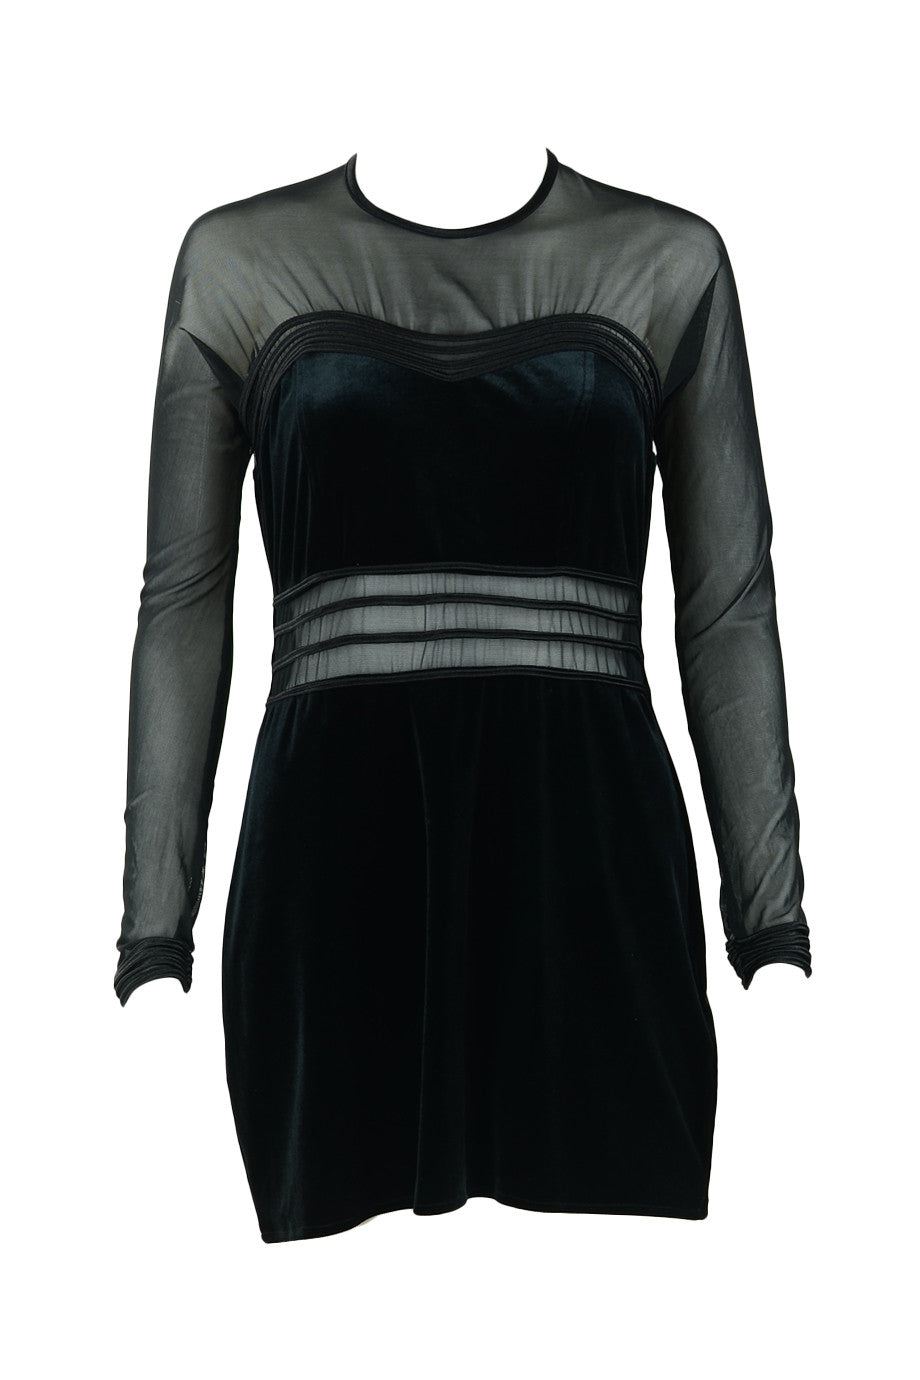 Black Paneled Dress